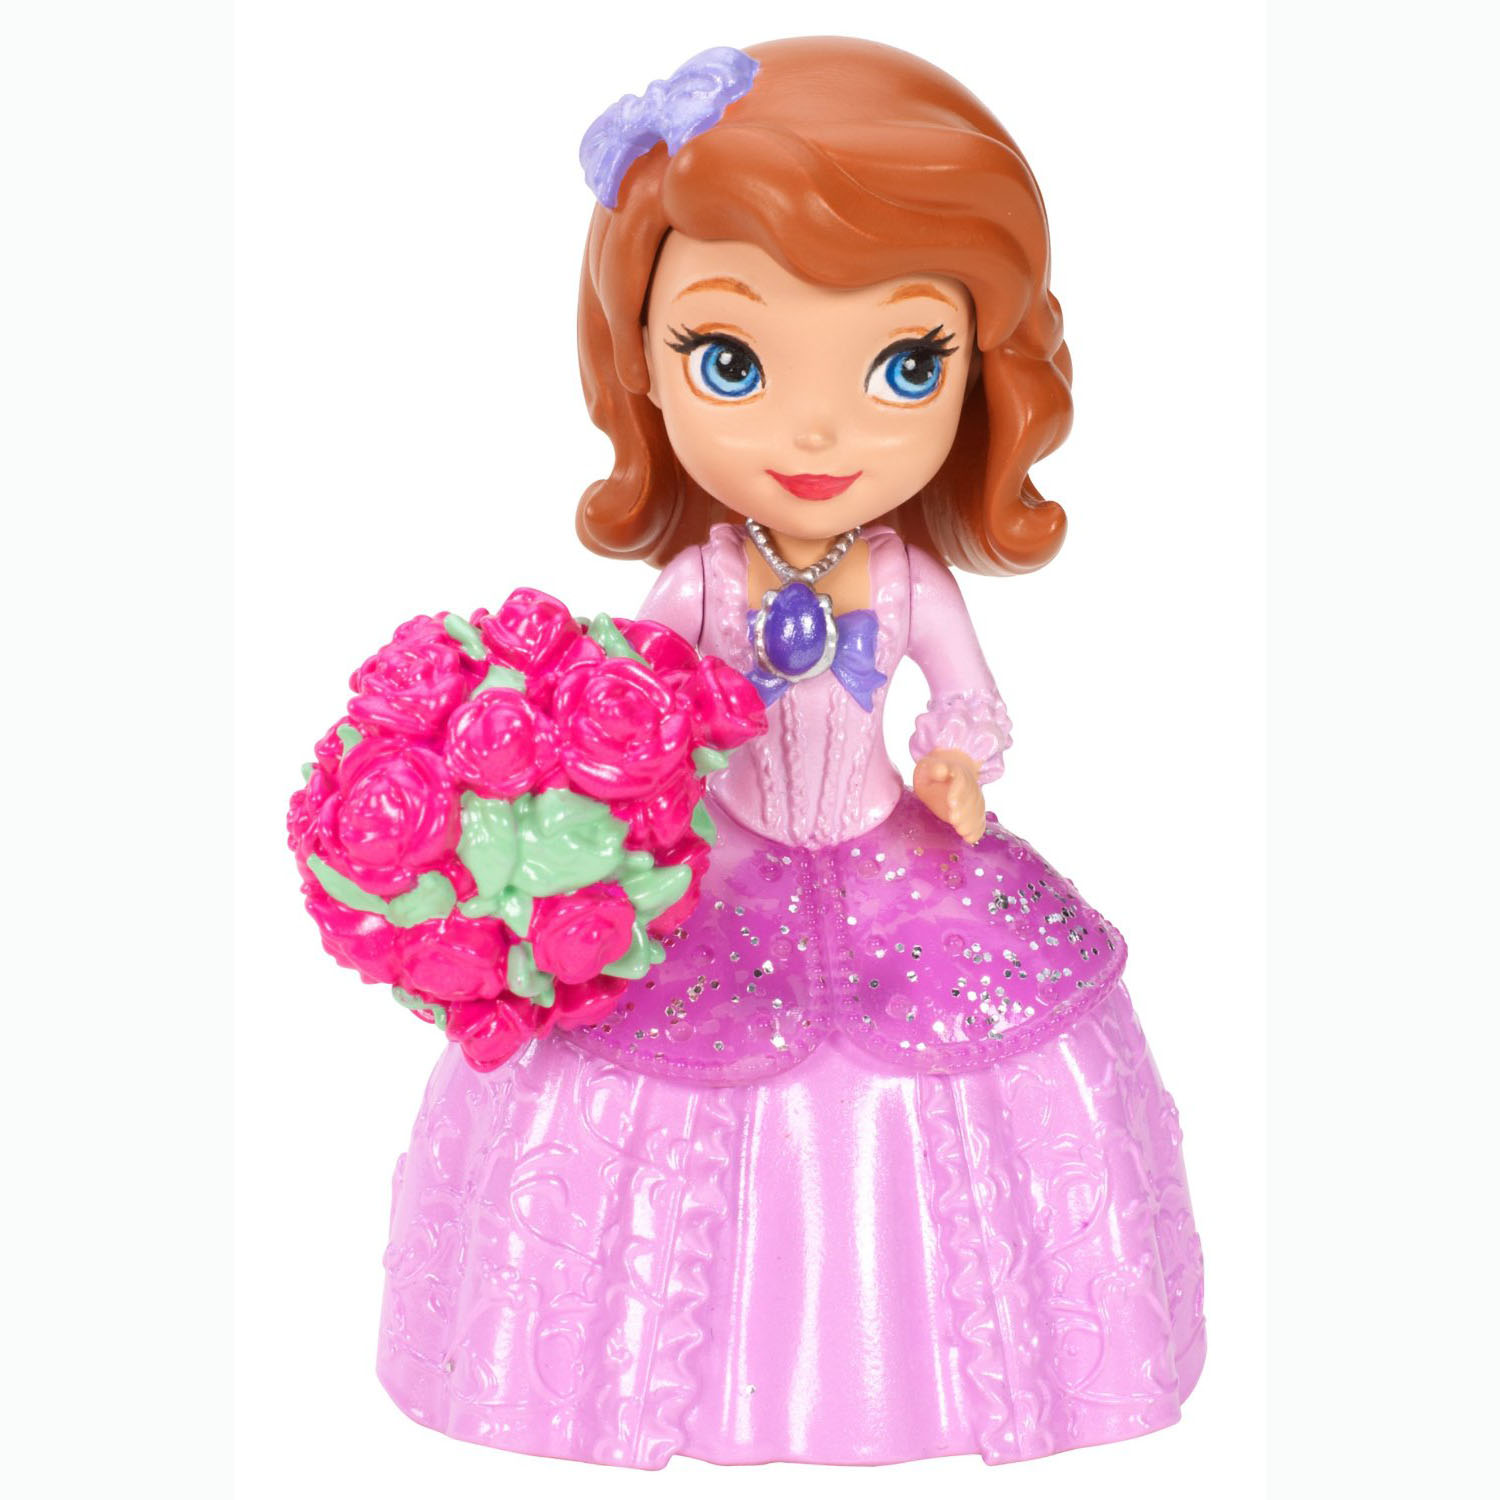 Sofia the First Toys Flower Girl Sofia at ToyStop